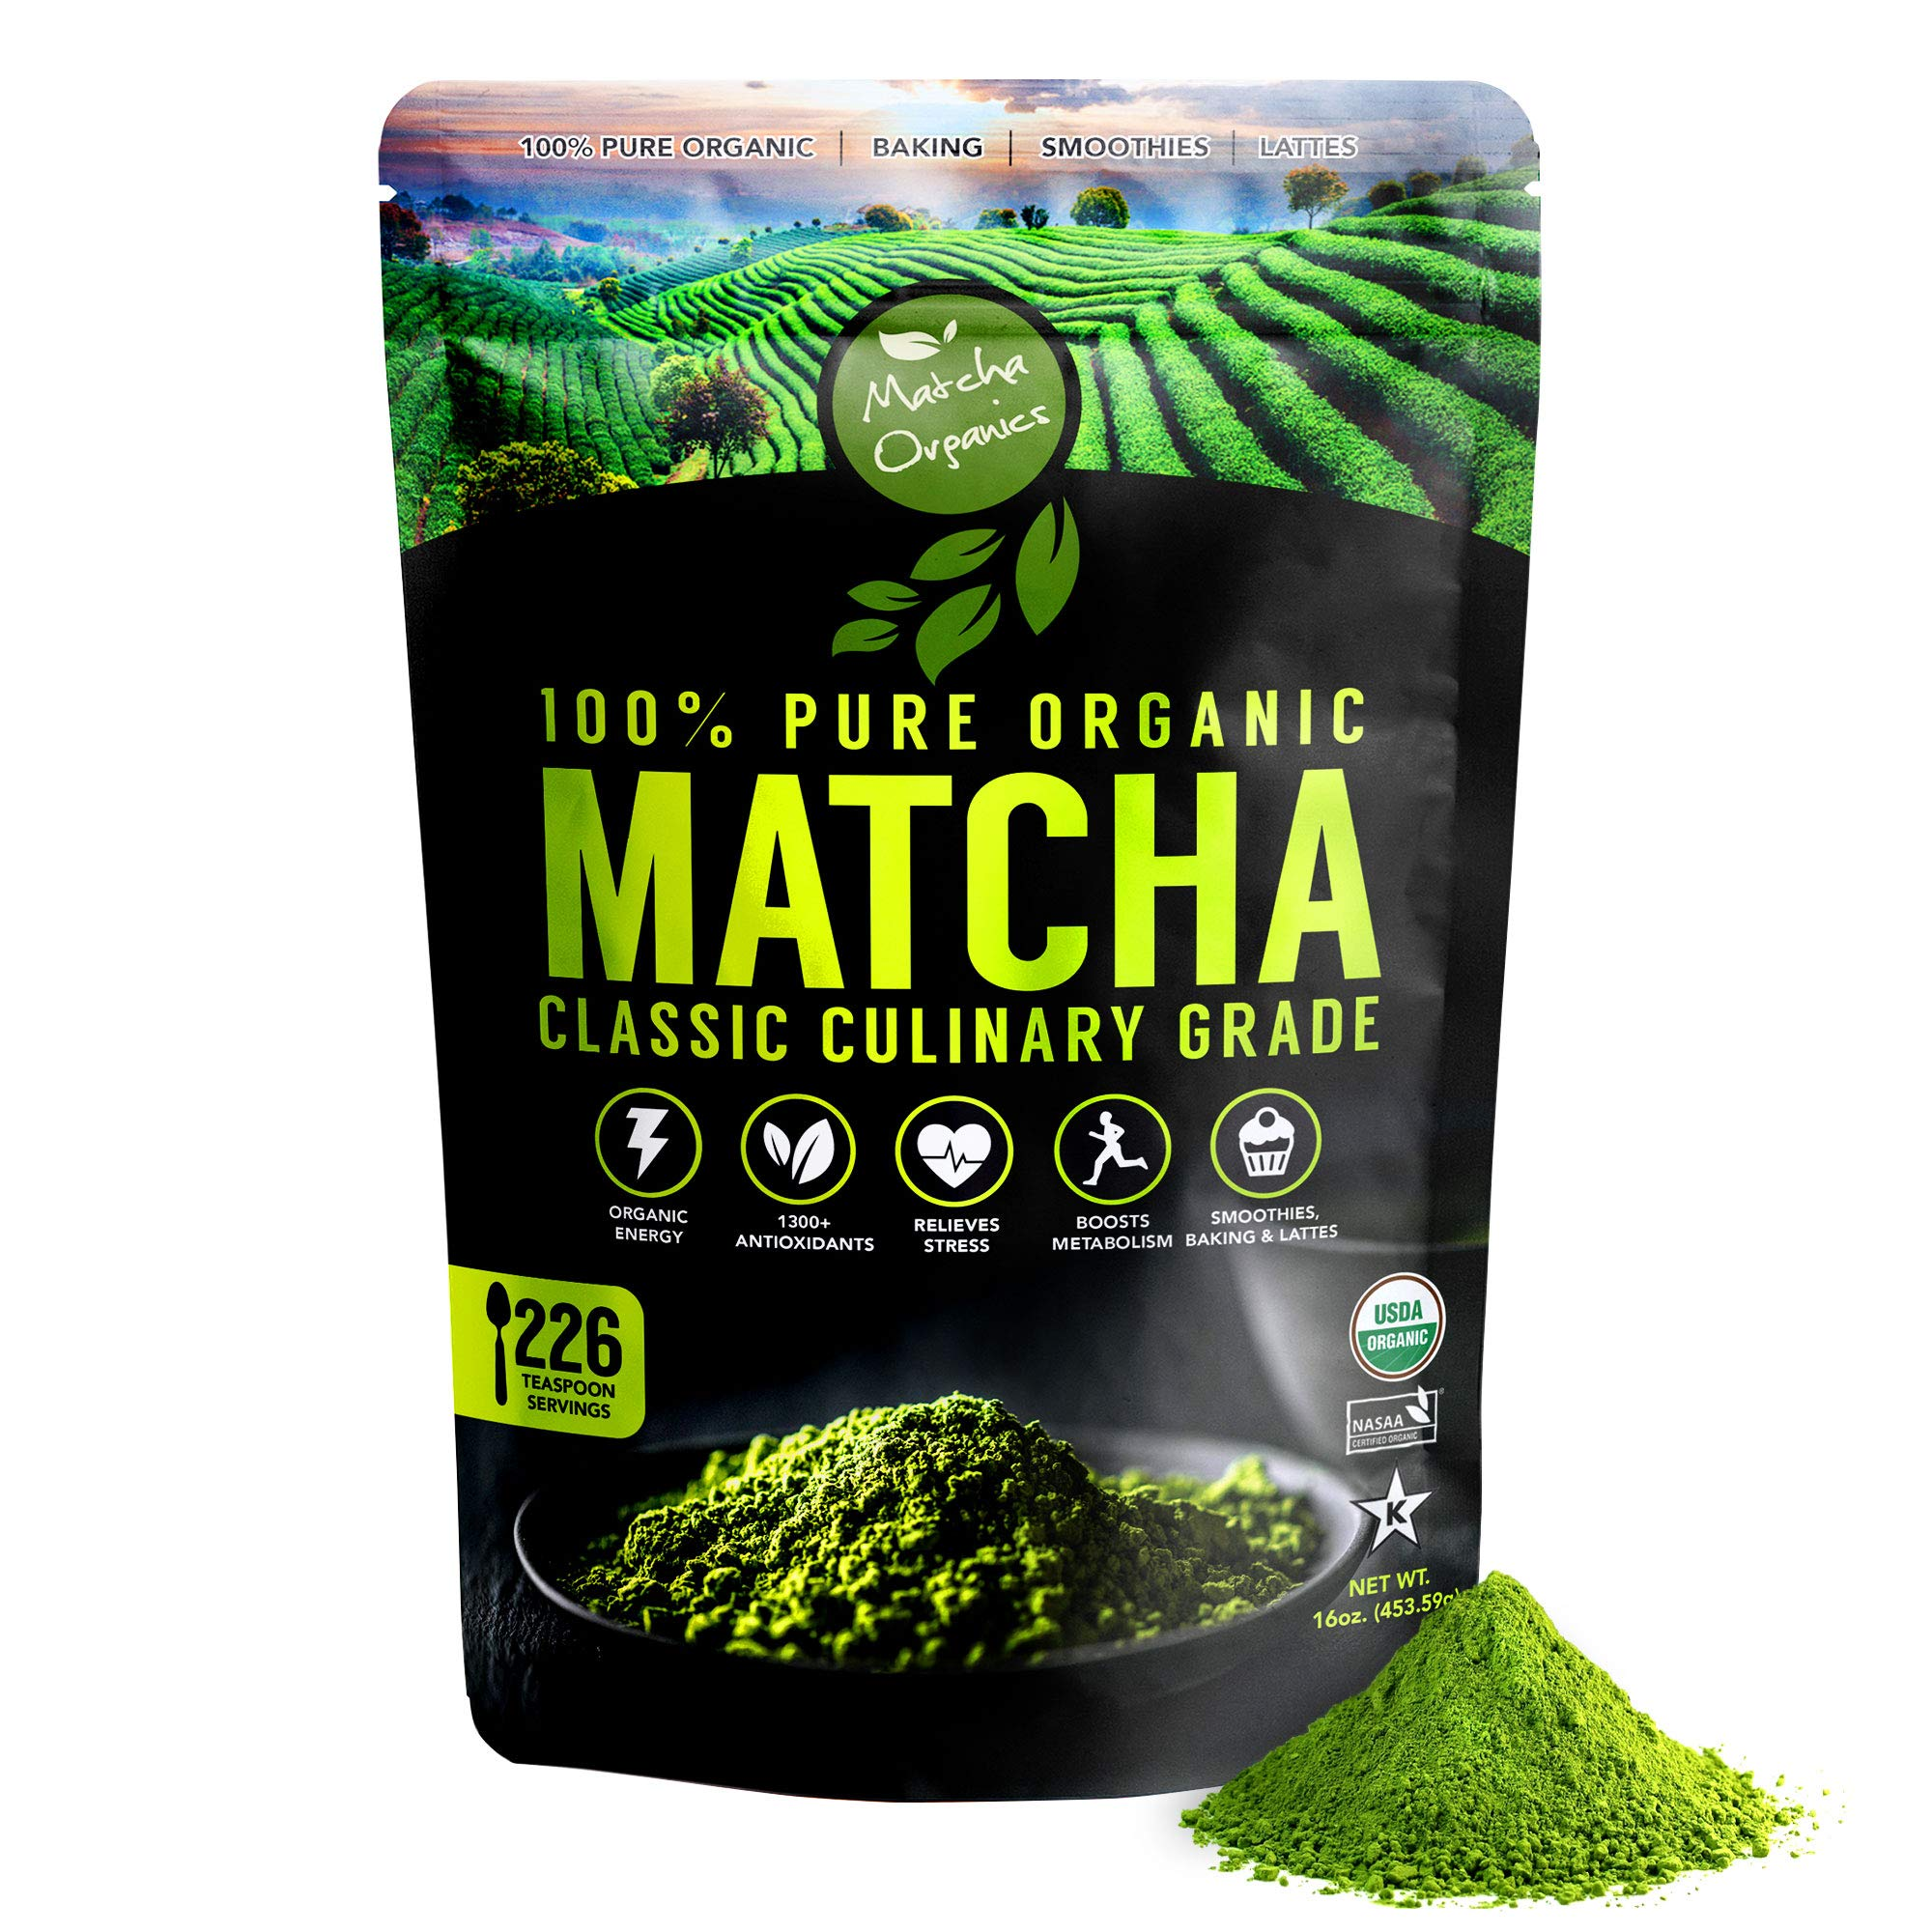 Matcha Organics Classic Matcha Green Tea Powder Extract - 100% Pure USDA Organic Culinary Grade - Bulk Starter Bag 16oz / 453g - Latte Mix, Smoothies, Baking Foods - FREE Top 100 Matcha Recipes Ebook by Matcha Organics